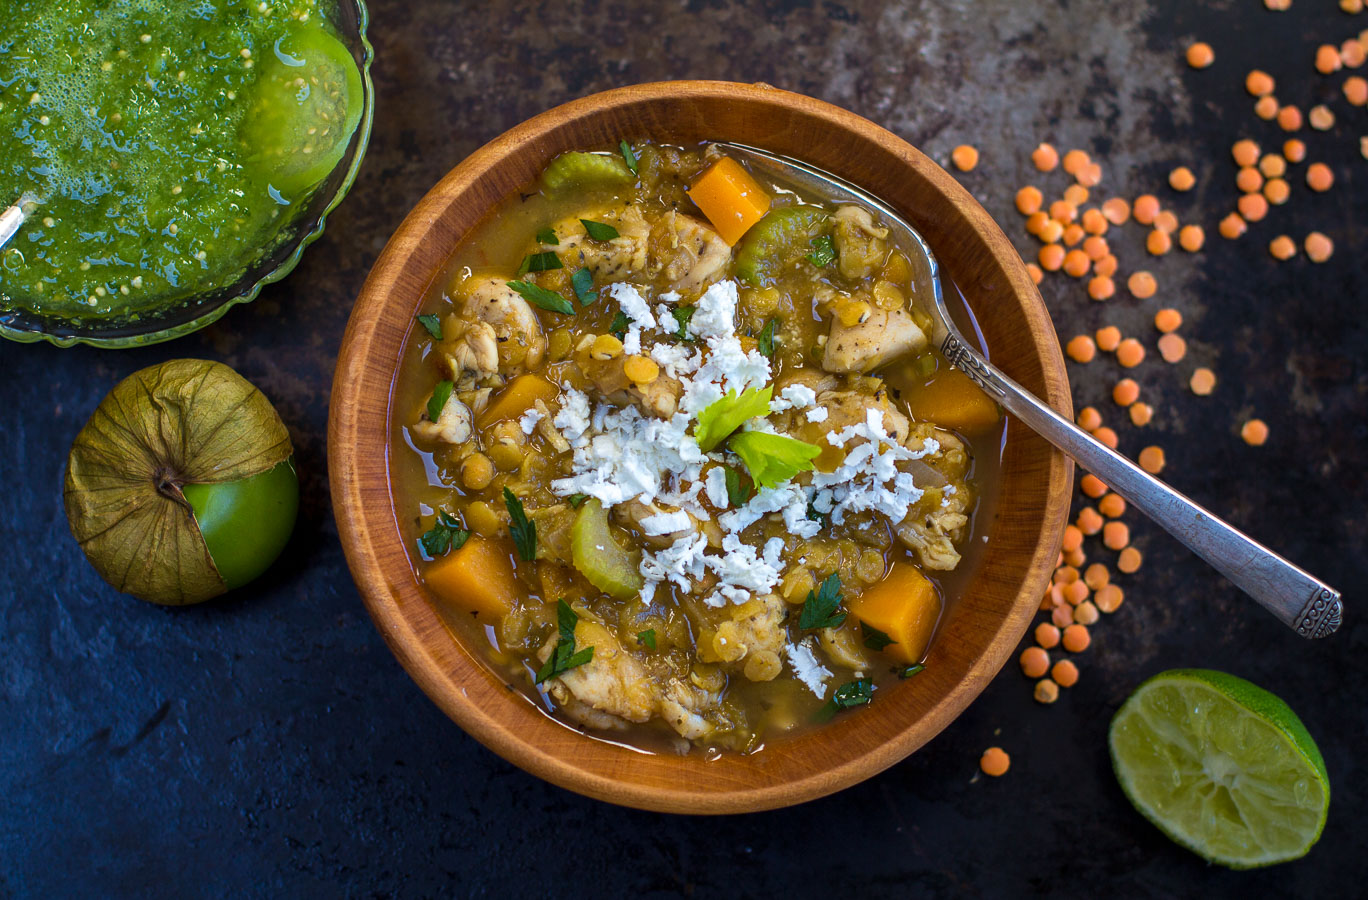 White Chicken Chili makes a delicious meal full of mildly-spicy Chili Flavor, Red Lentils, Butternut Squash and Chicken.